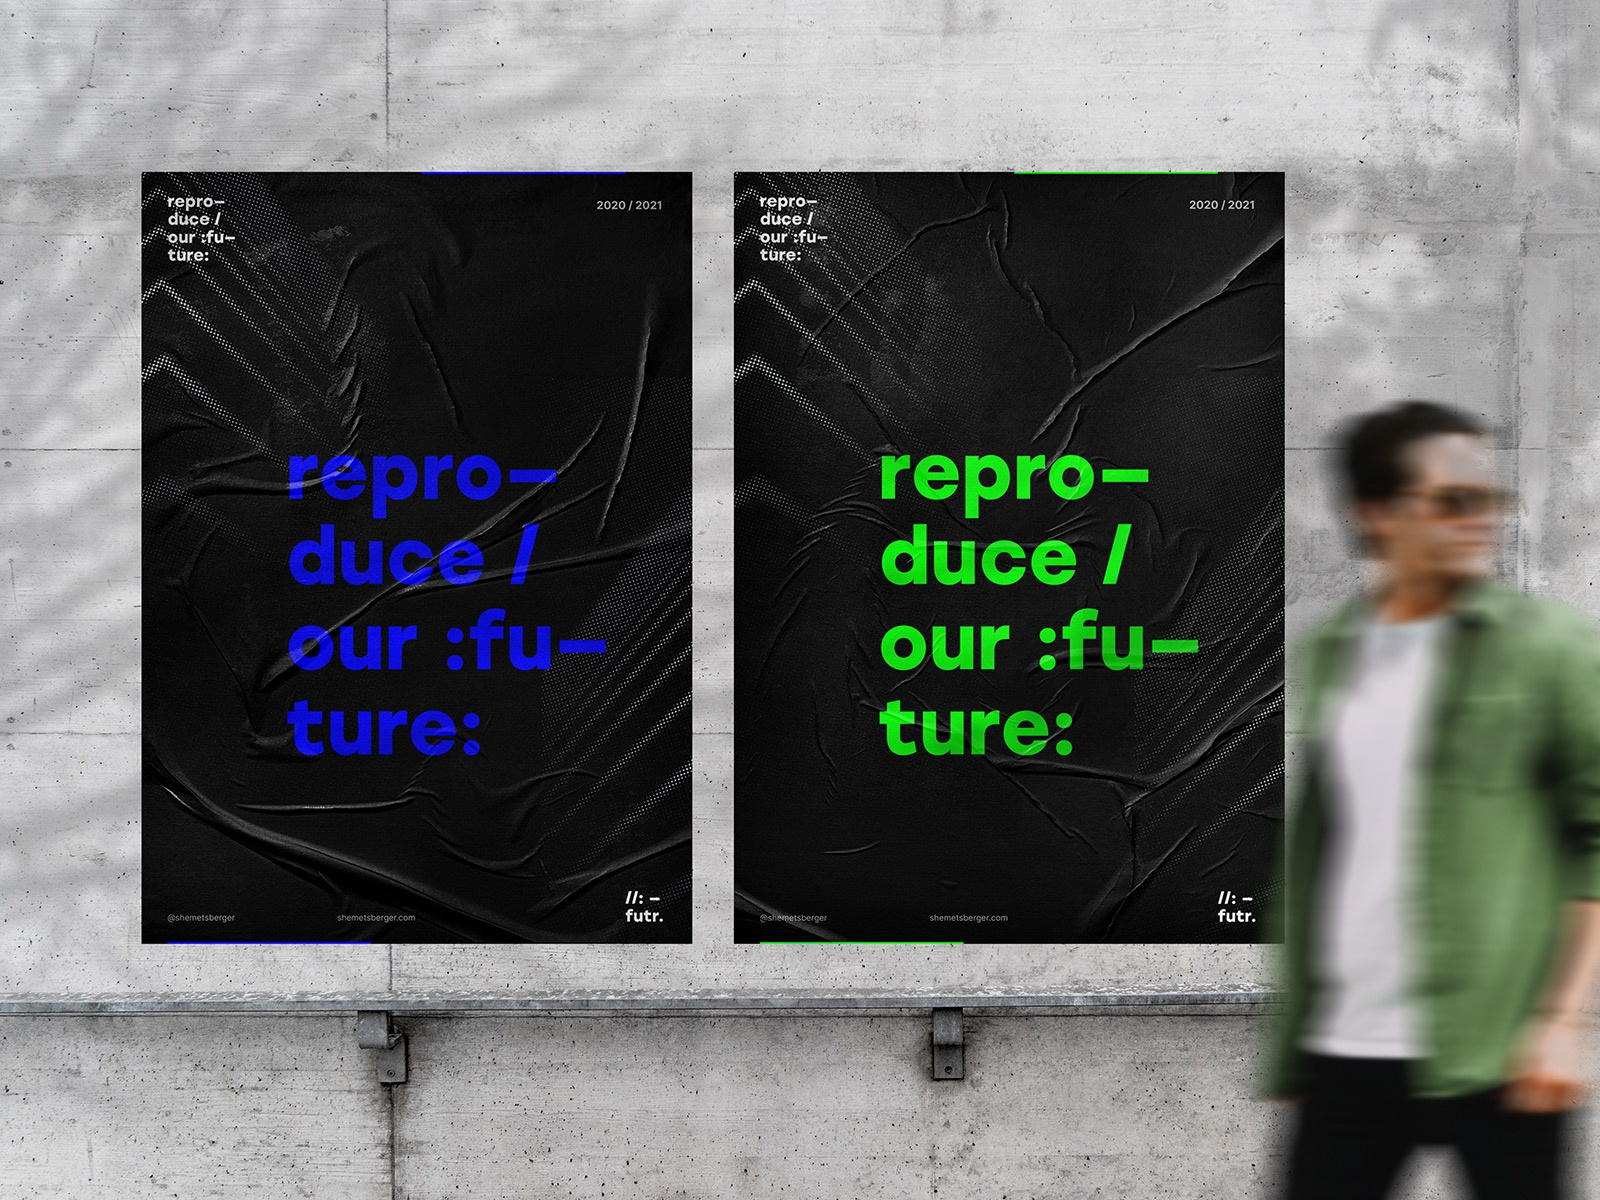 repro—duce /  our :fu—ture: